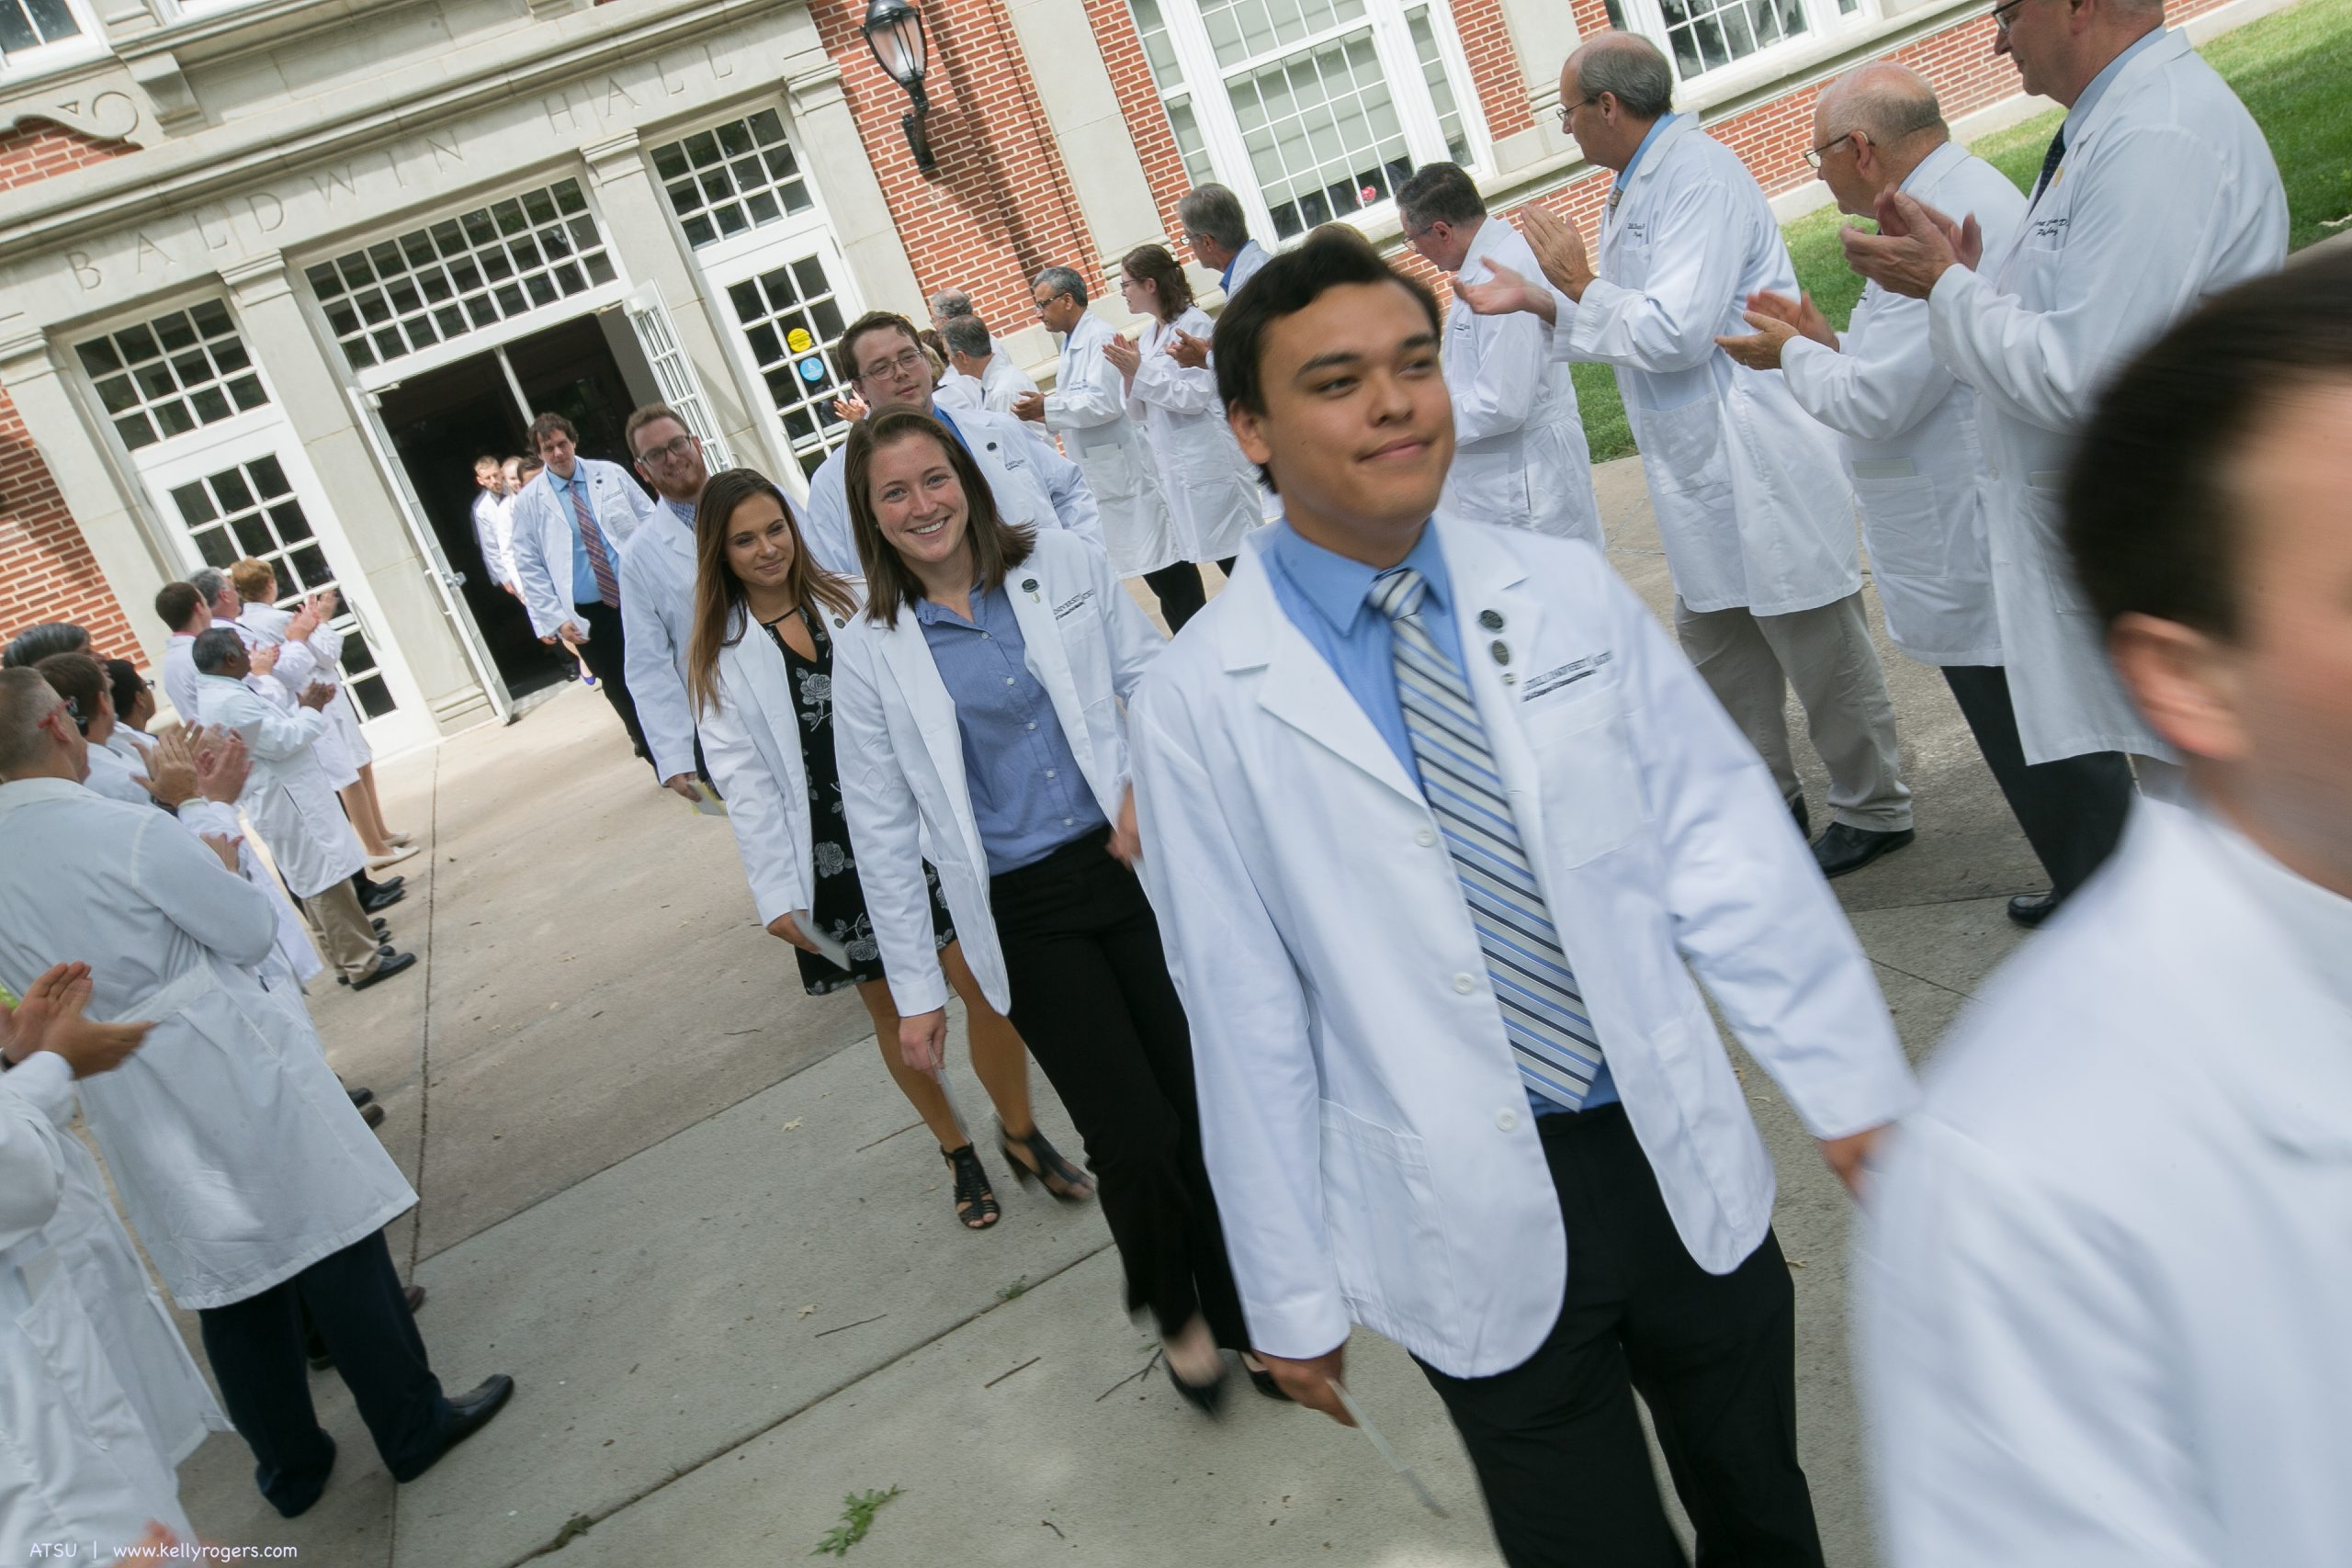 Students walking from ceremony